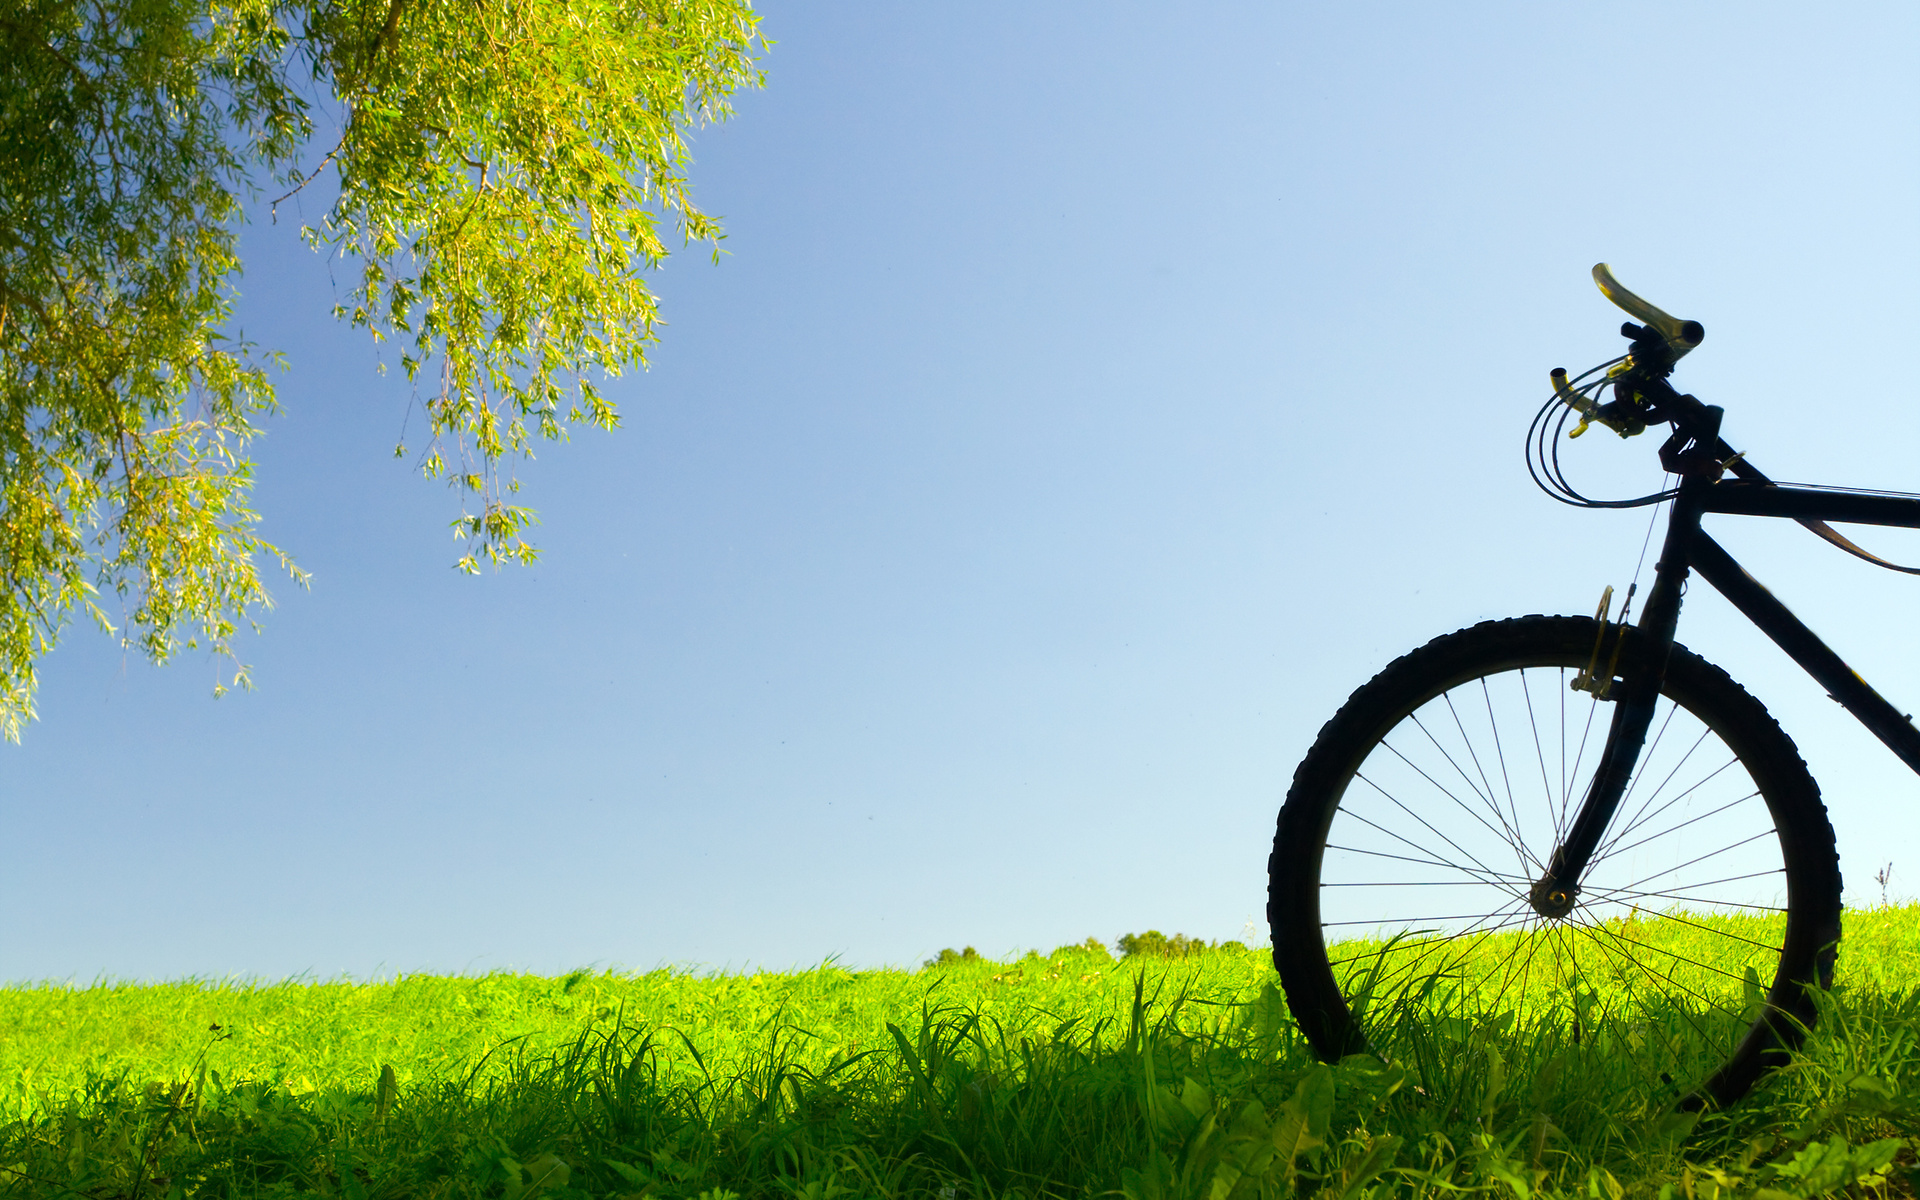 Bicycle Full HD Wallpaper and Background 1920x1200 ID280639